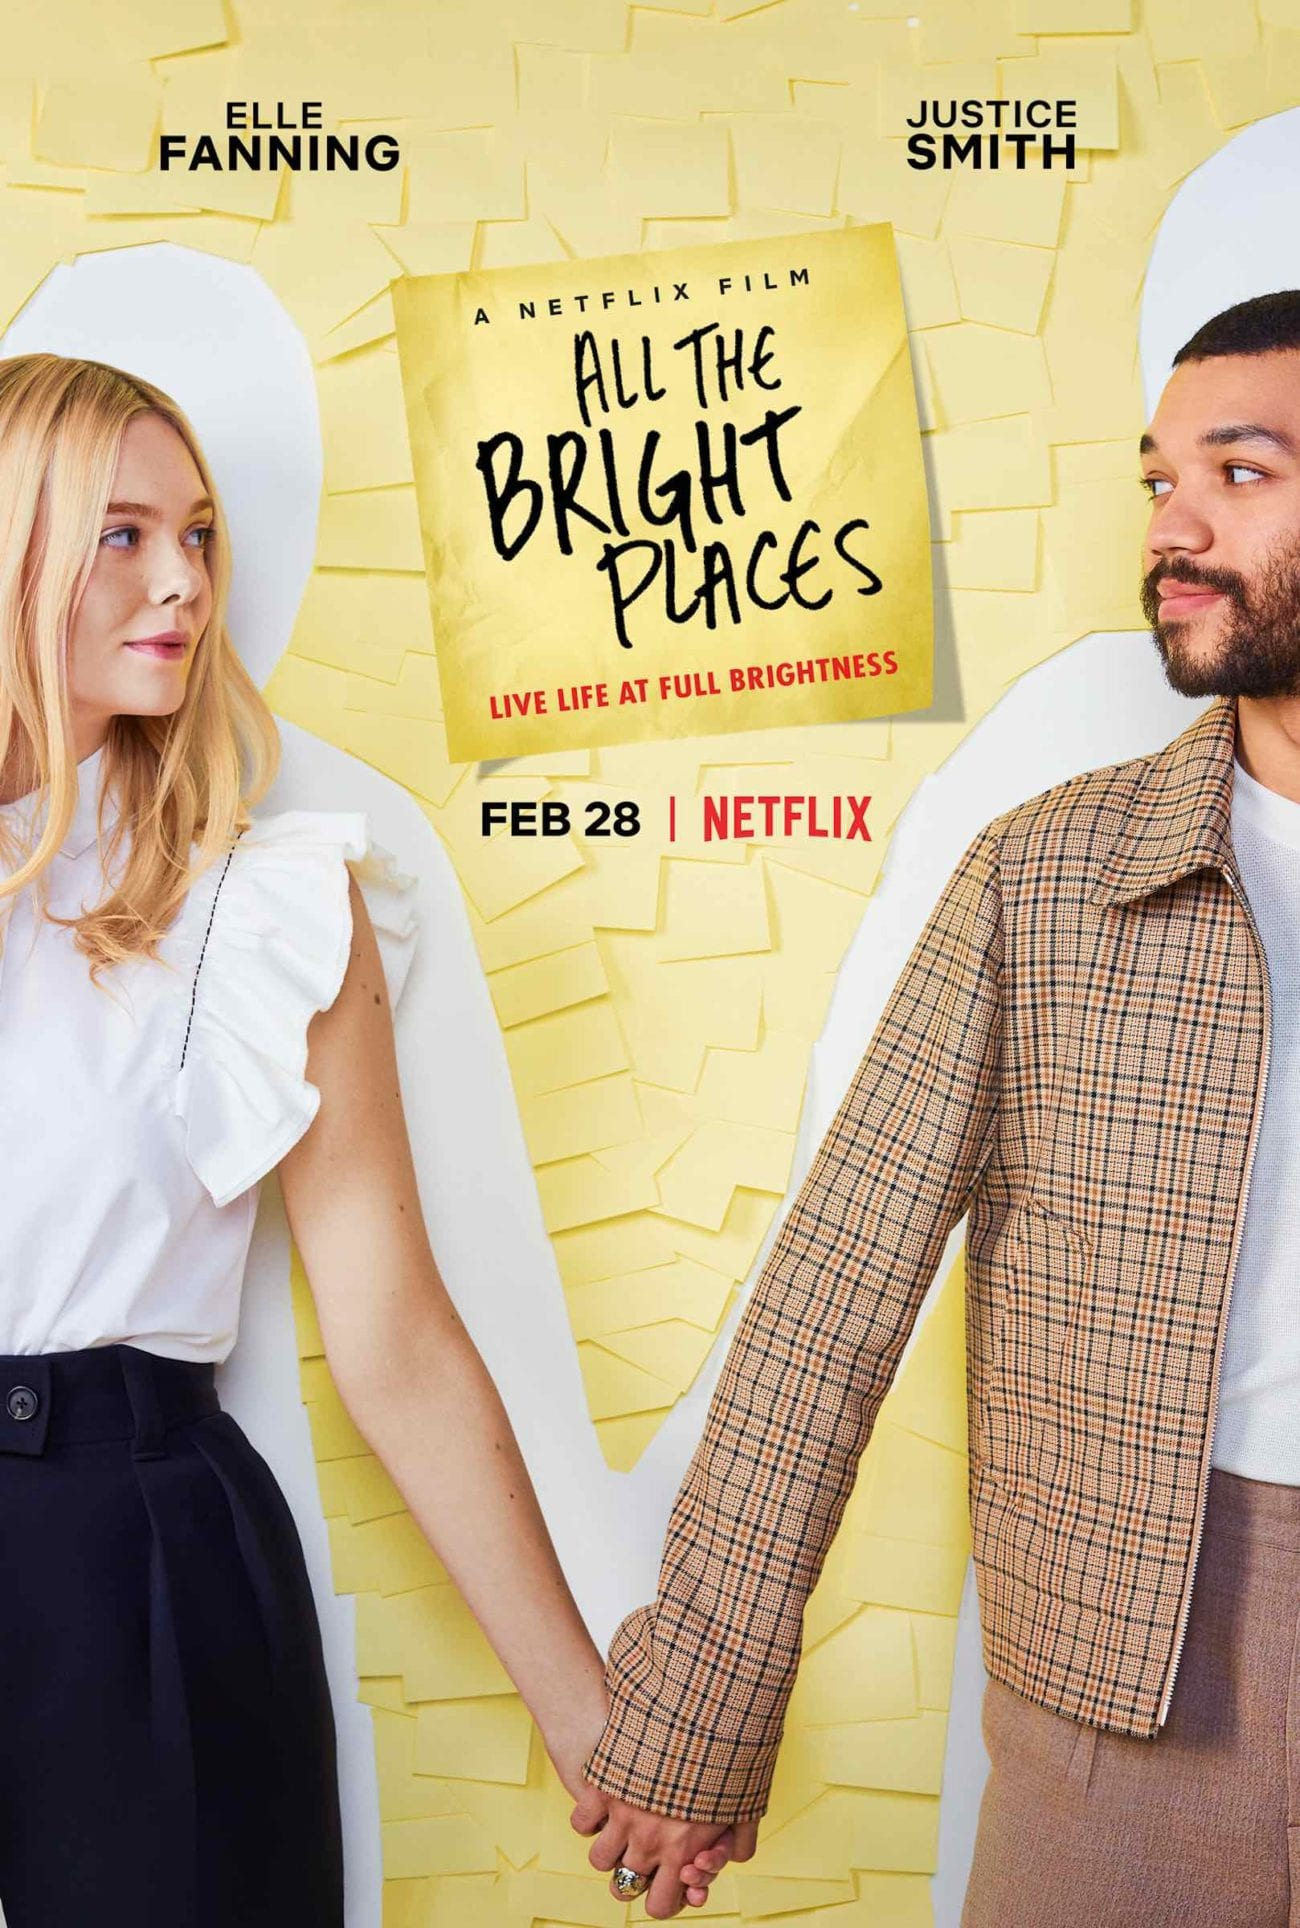 Coming to Netflix this month, 'All the Bright Places' is the new romantic drama directed by Brett Haley. Here's everything we know.